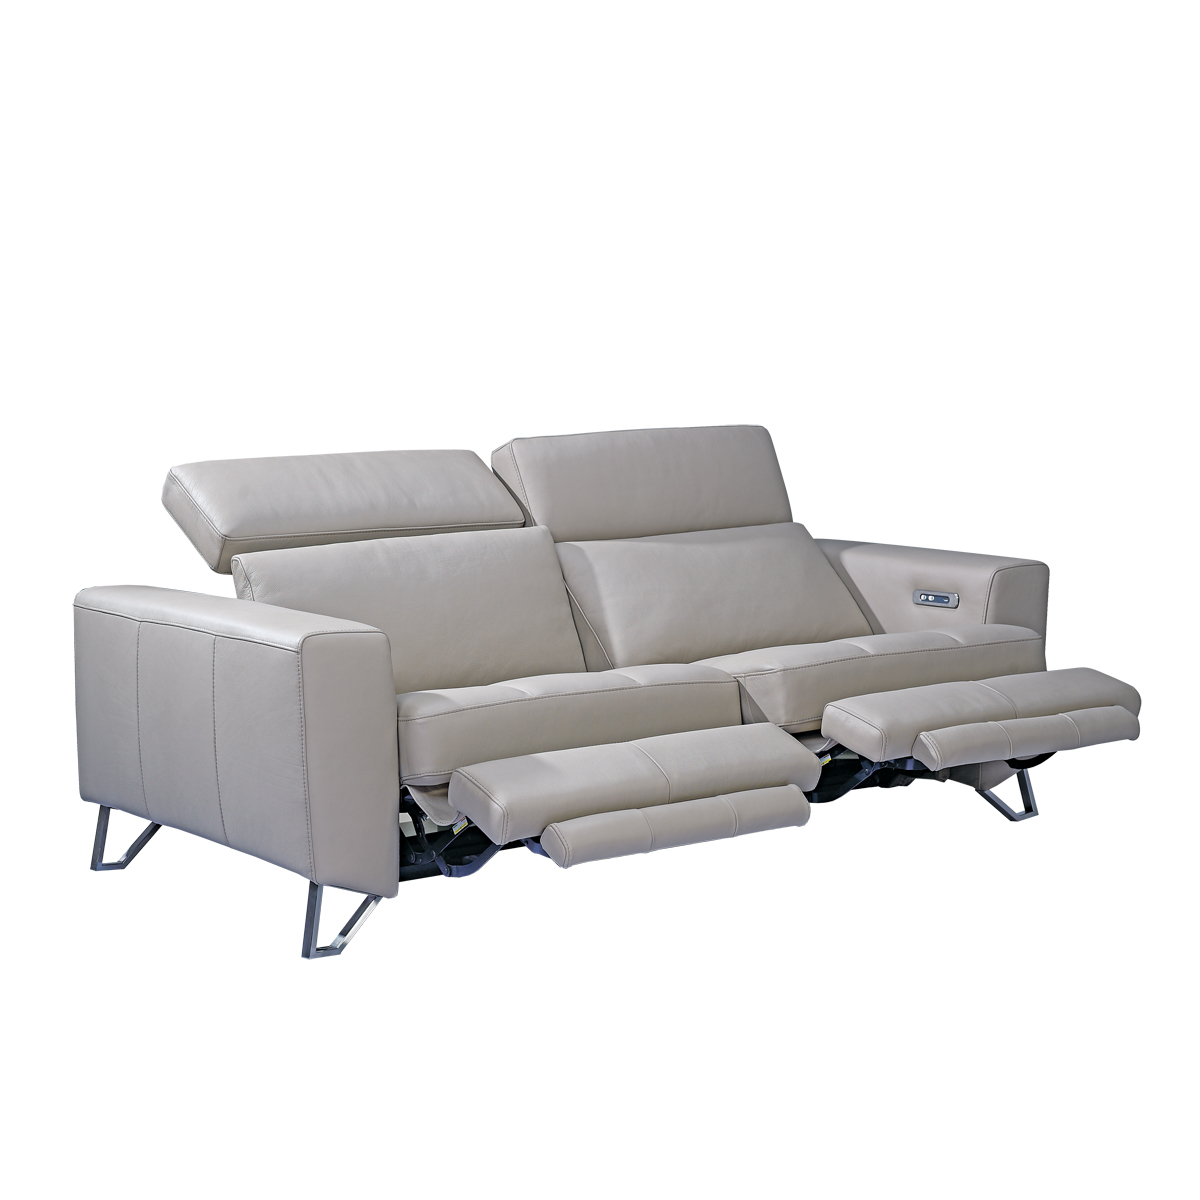 Aperto 3 seater recliner sofa beyond furniture for Leather sofa deals